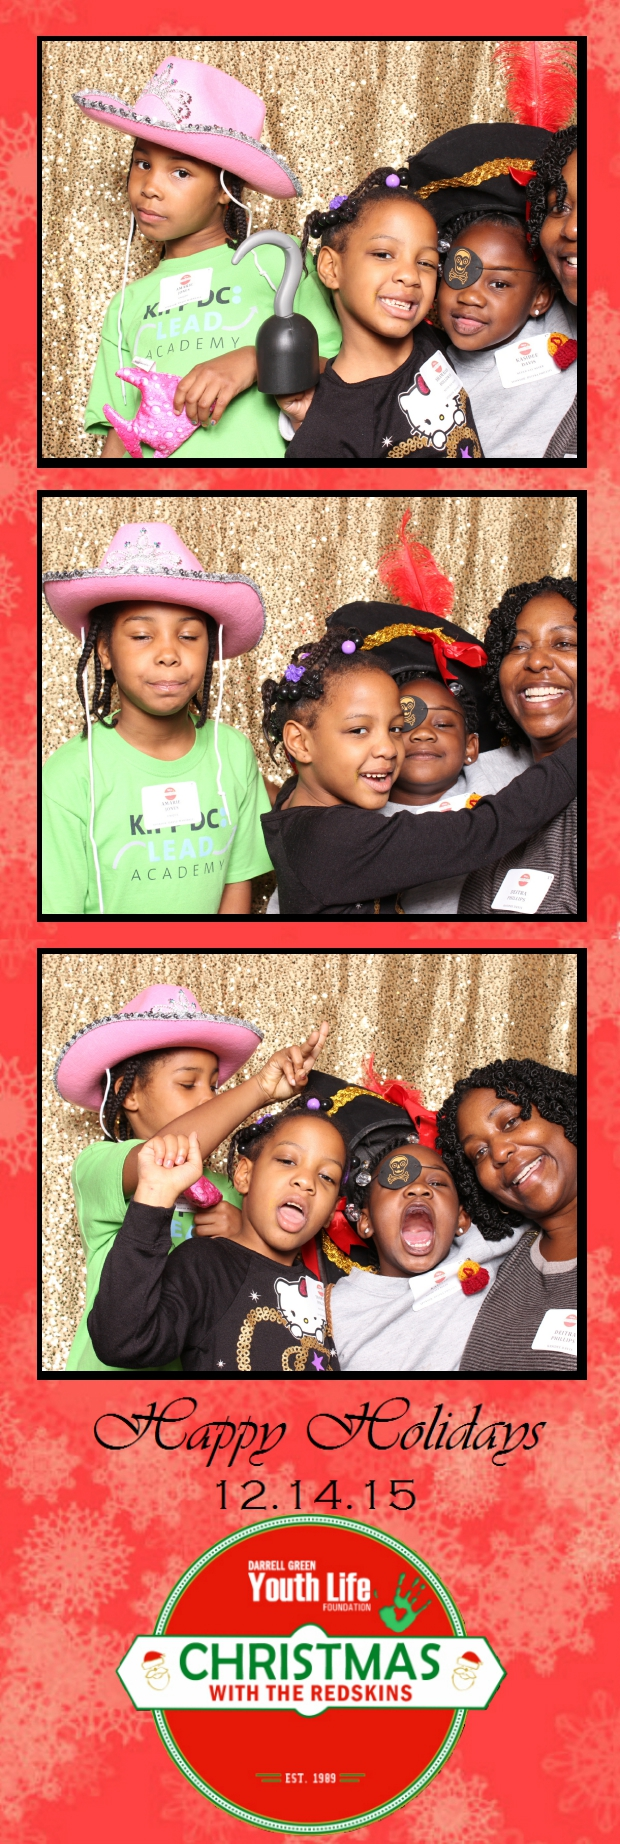 Guest House Events Photo Booth DGYLF Strips (23).jpg